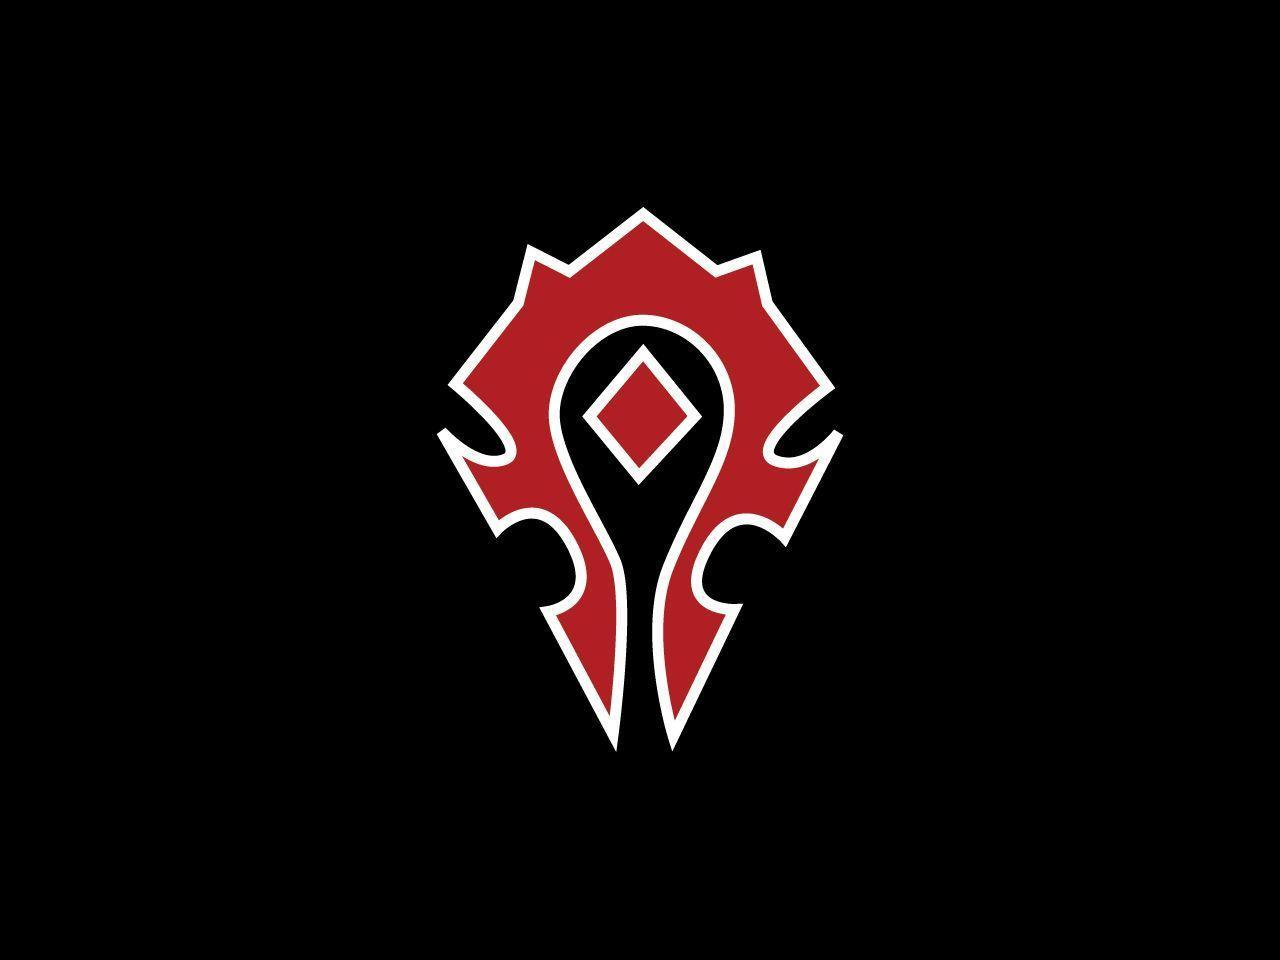 Horde Logos Additionally, you can browse for other related vectors from the tags on topics alliance, black, brands, circle. horde logos